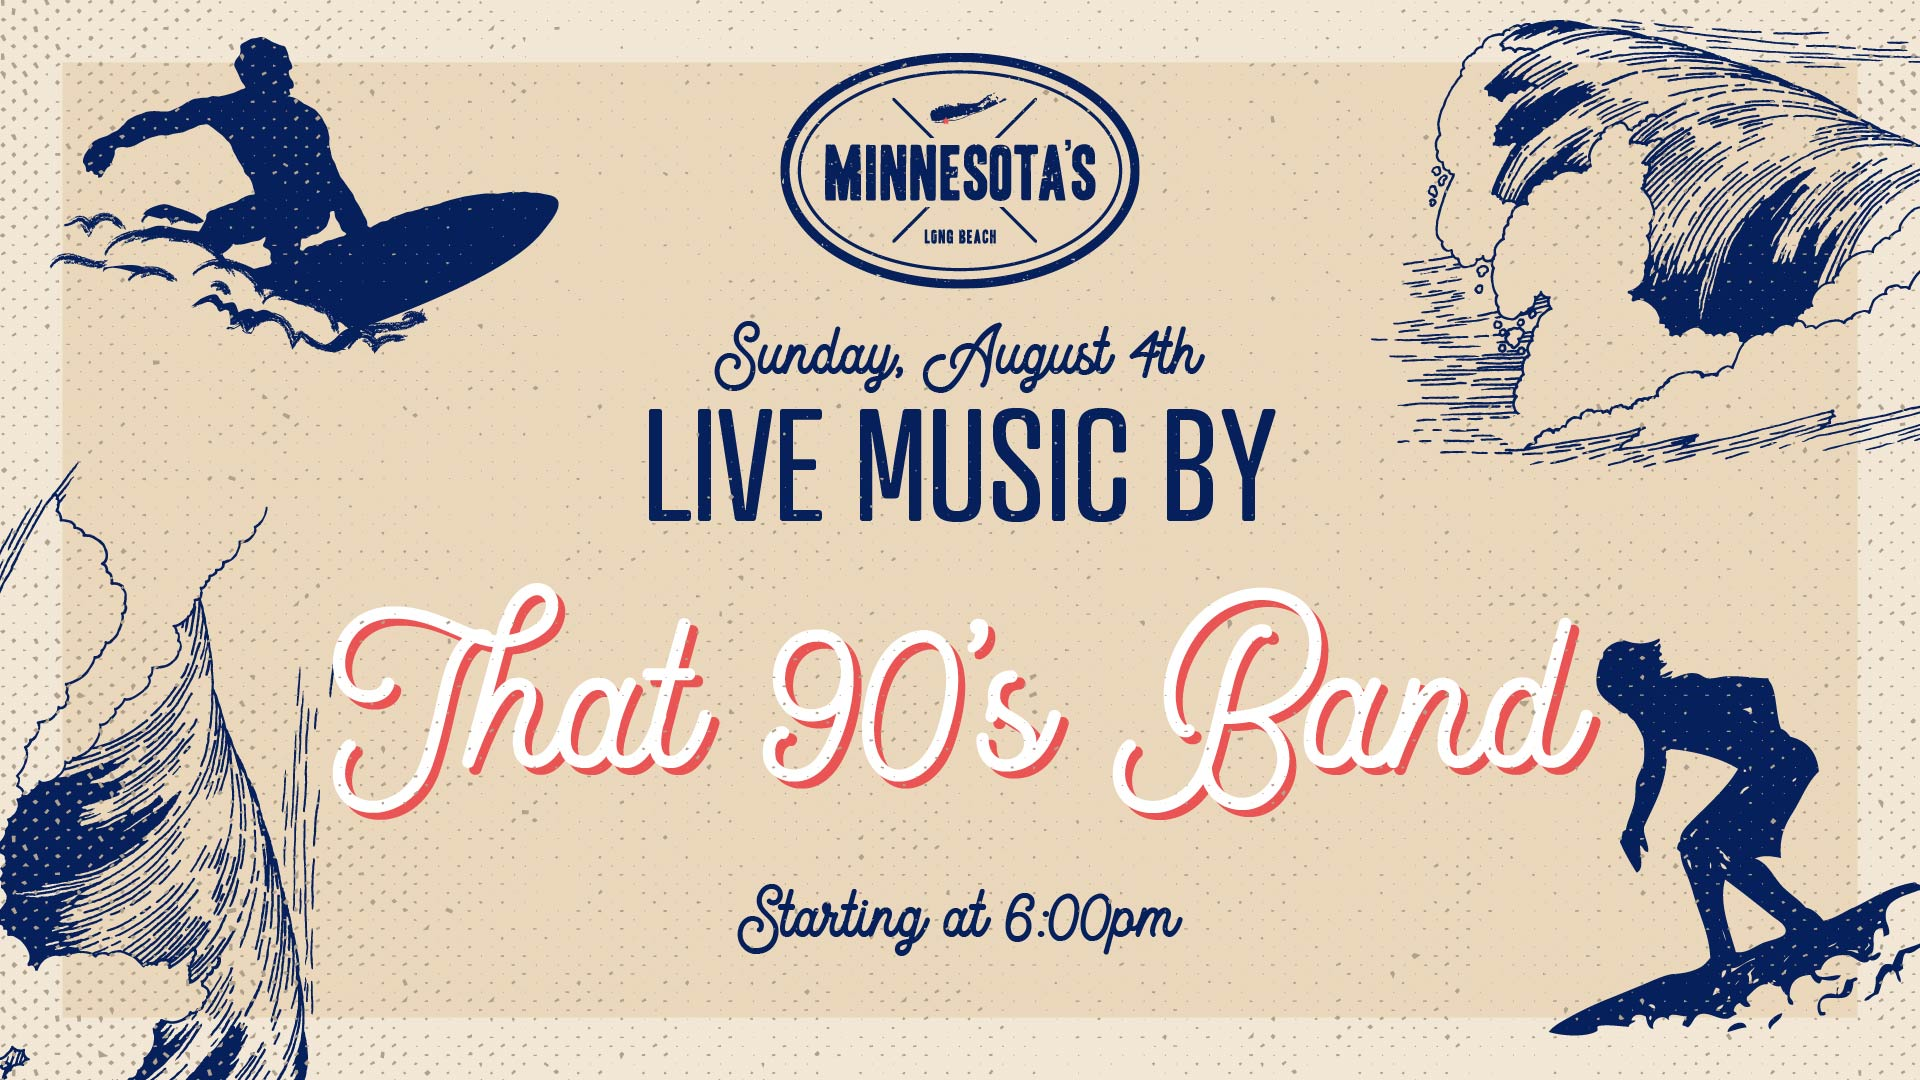 flyer for live music by that 90's band at minnesotas on august 4th at 6pm